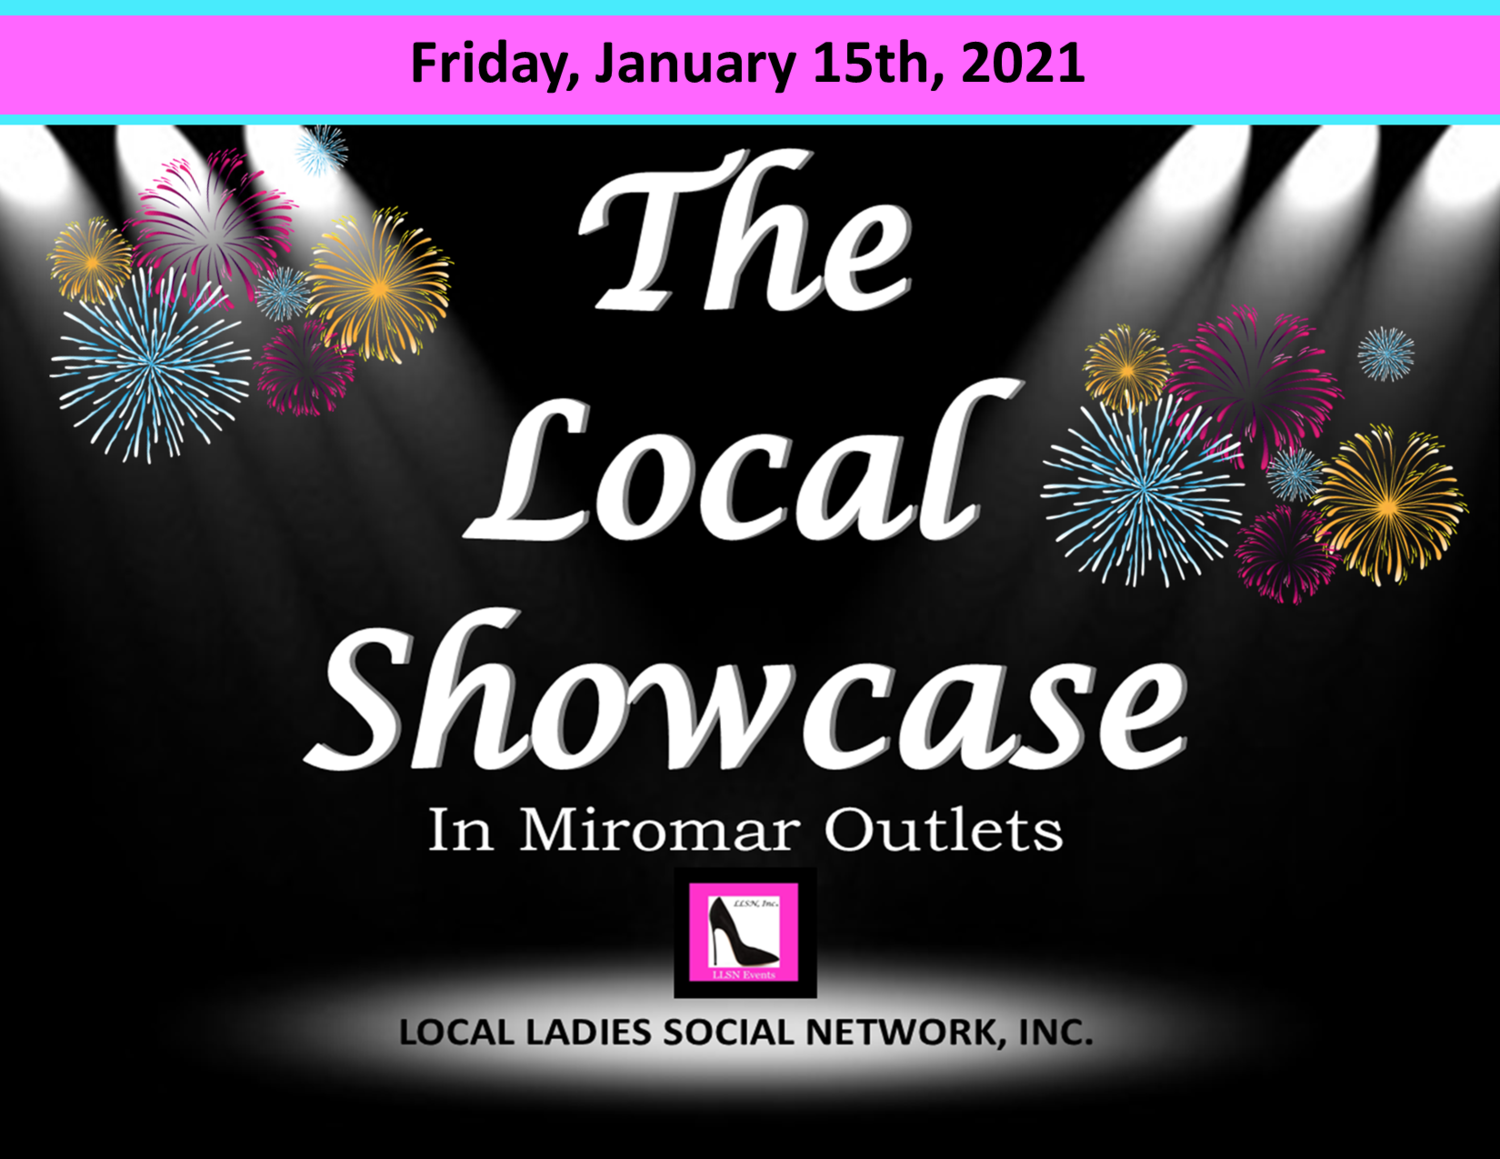 Friday, January 15th, 2021 11am-7pm